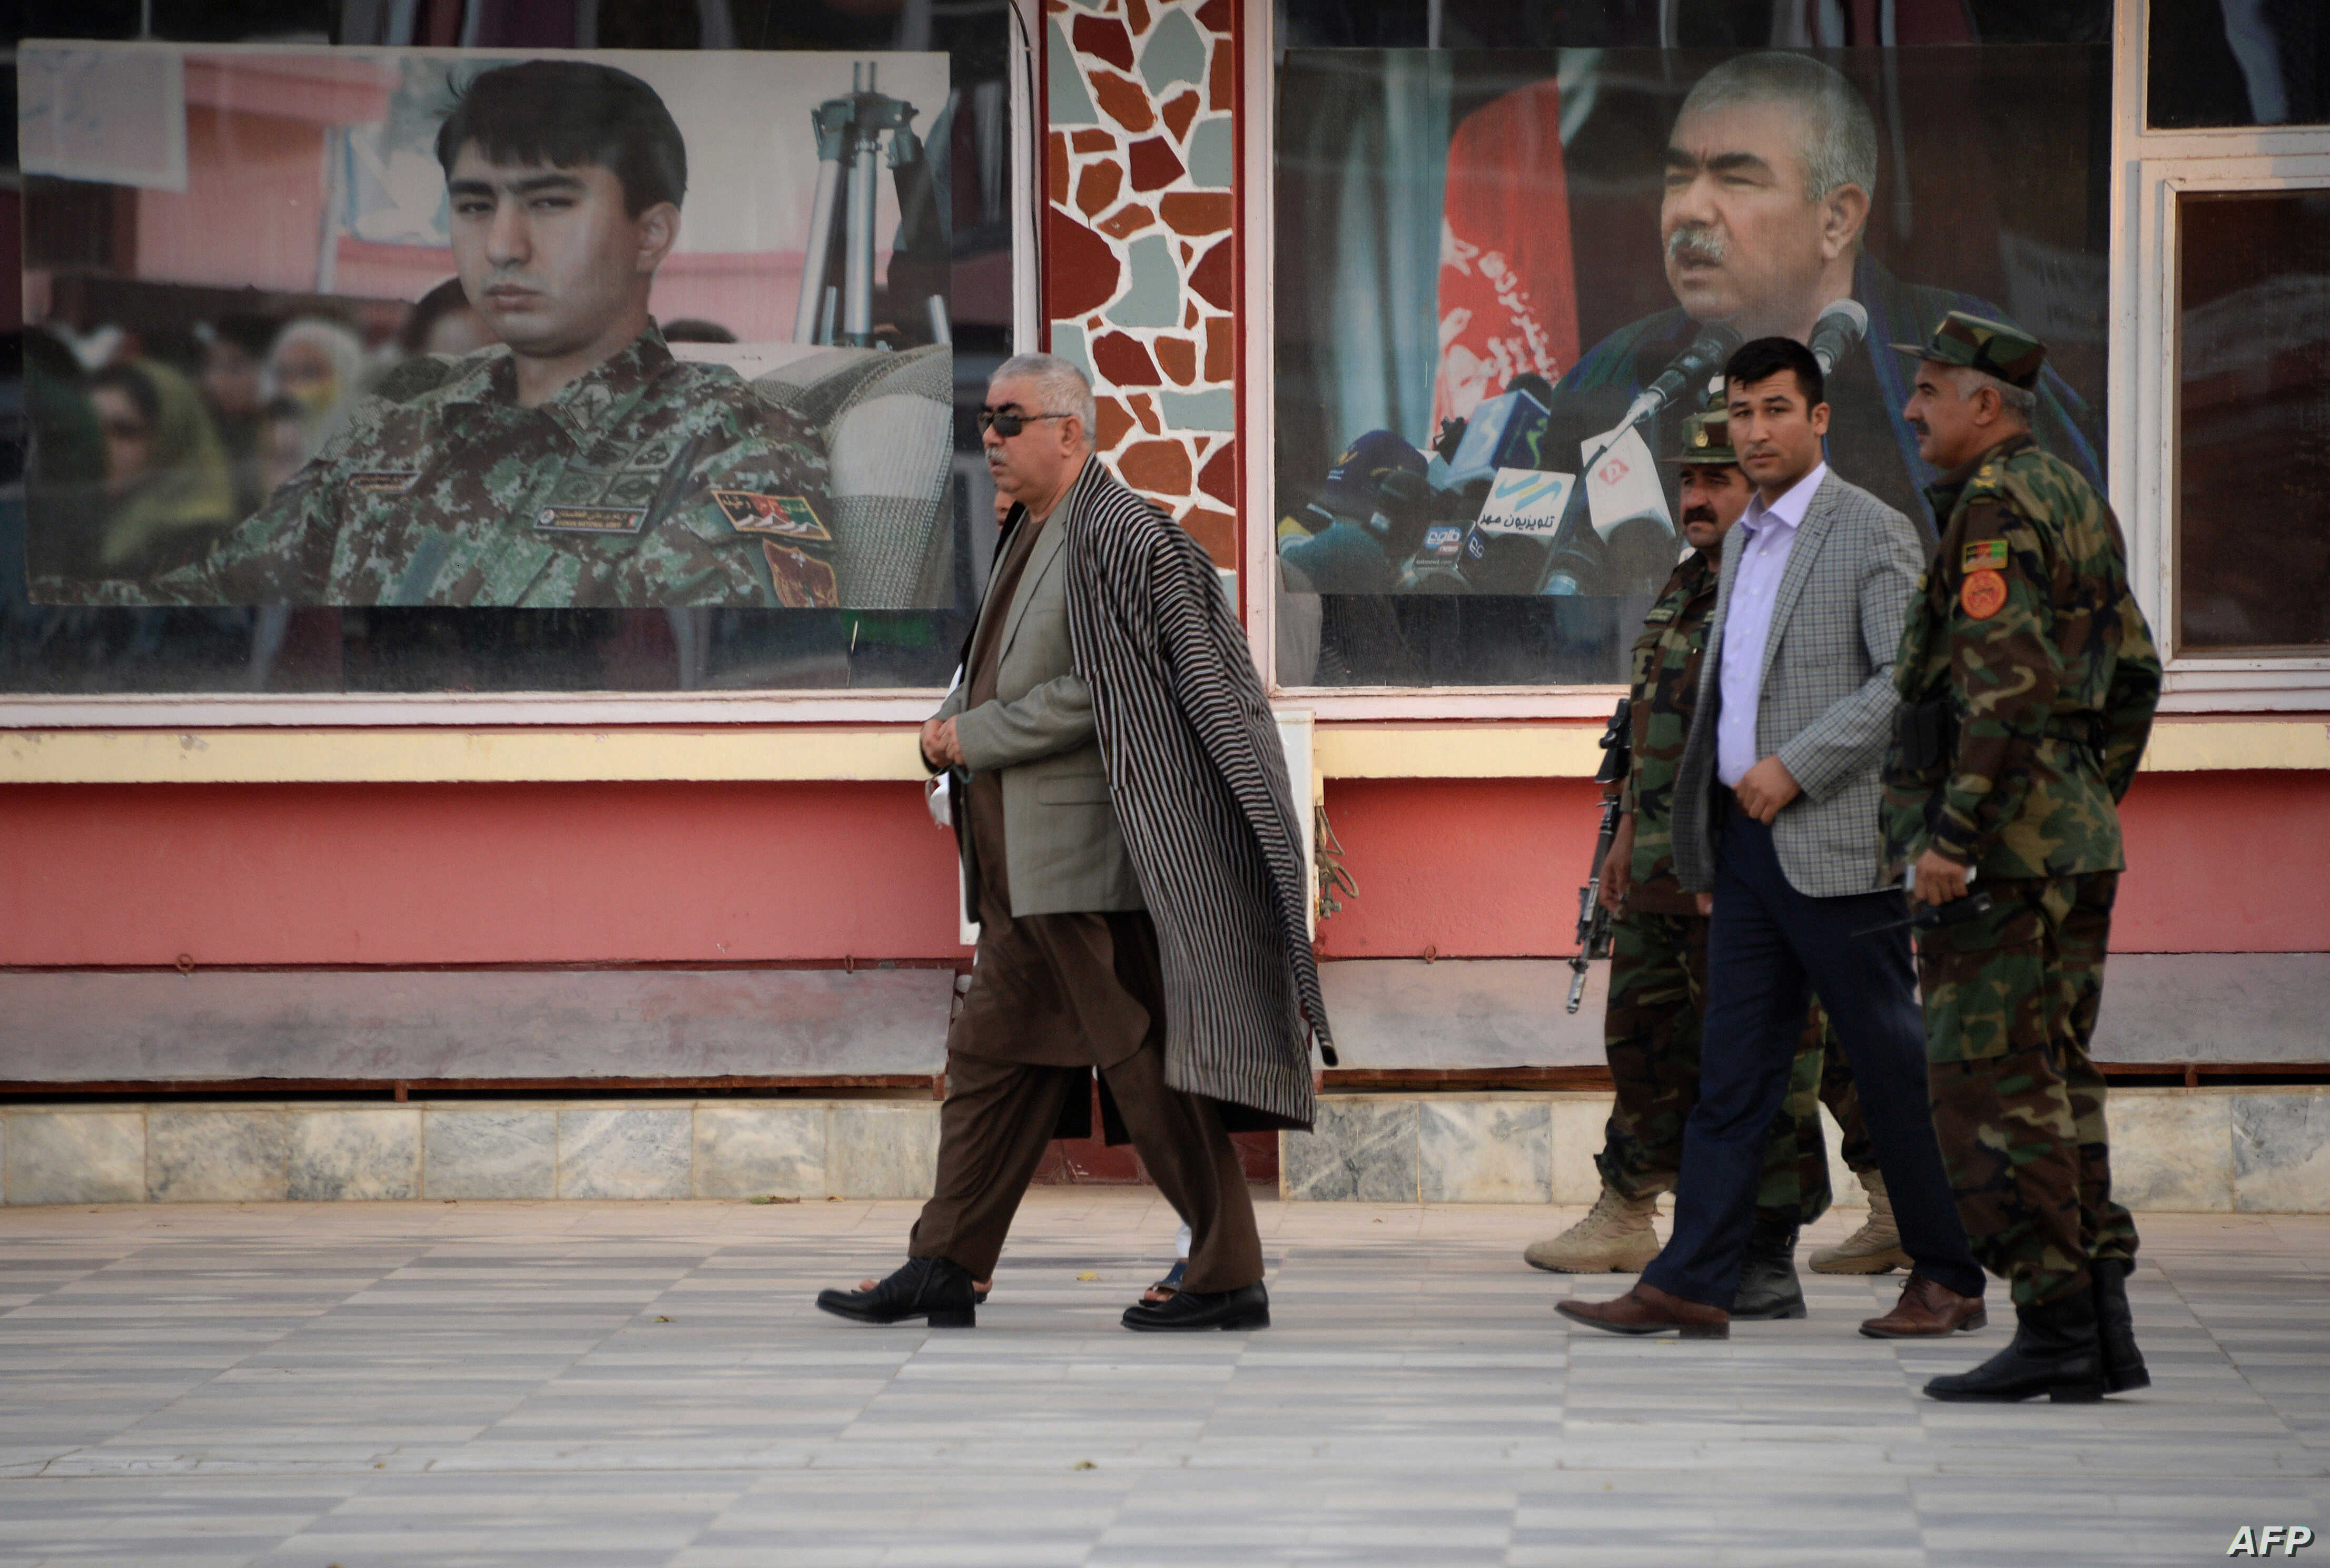 Afghan first vice-president Abdul Rashid Dostum (L) walks at his headquarters in Sheberghan, capital of northern Jowzjan province, July 28, 201.